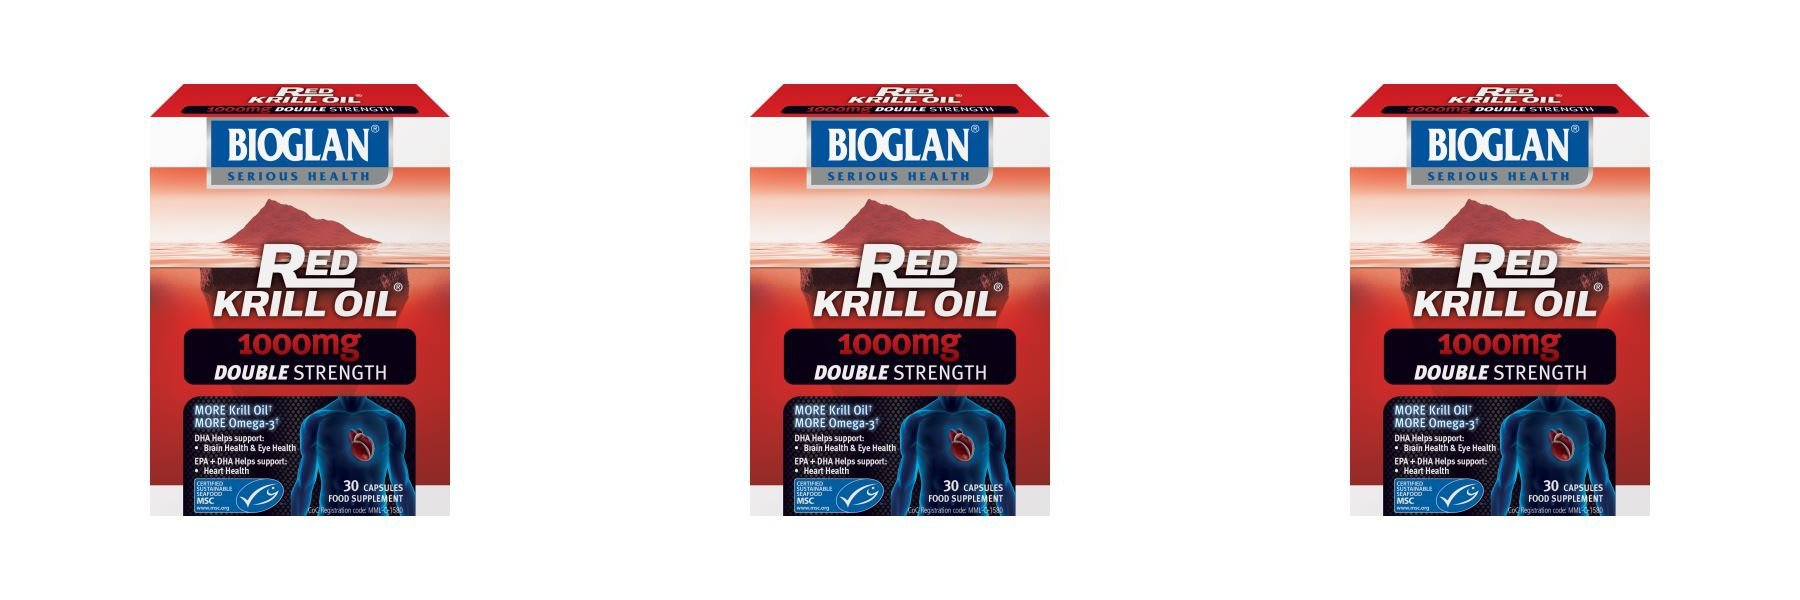 (3 PACK) - Bioglan Red Krill Oil 1000Mg Capsules - Double Strength | 30s | 3 PACK - SUPER SAVER - SAVE MONEY